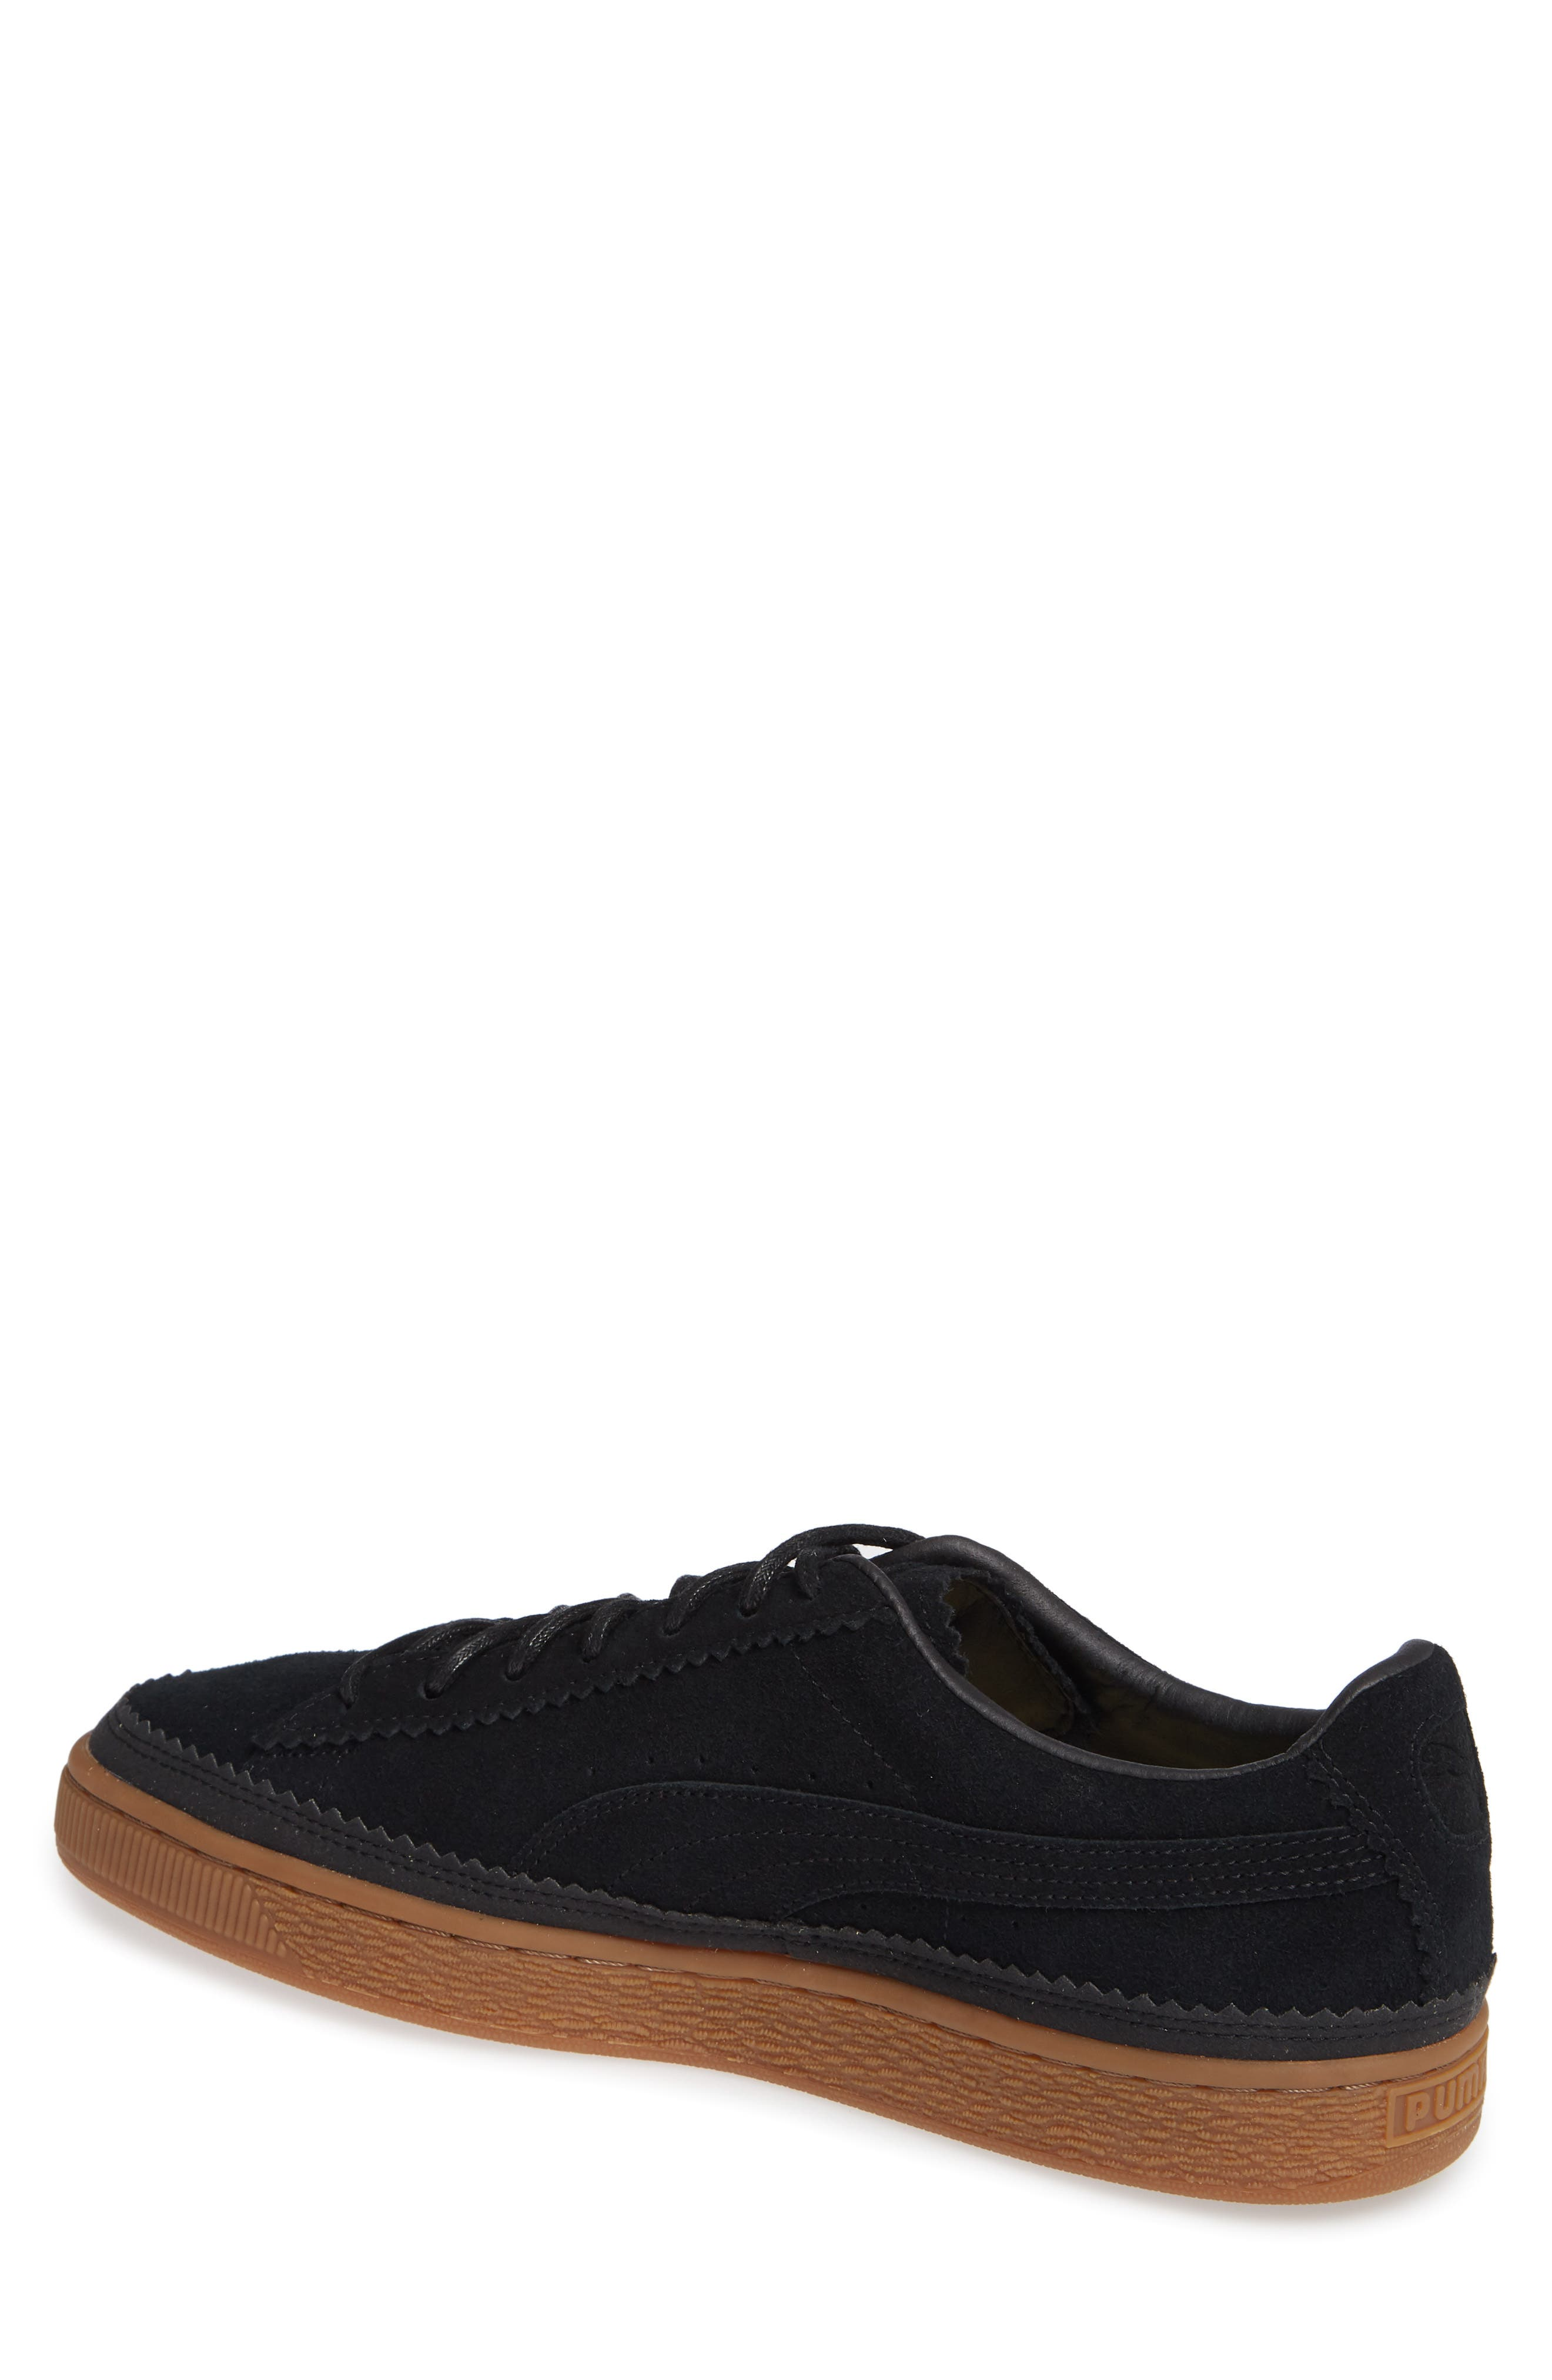 Suede Sneaker,                             Alternate thumbnail 2, color,                             BLACK/ BLACK